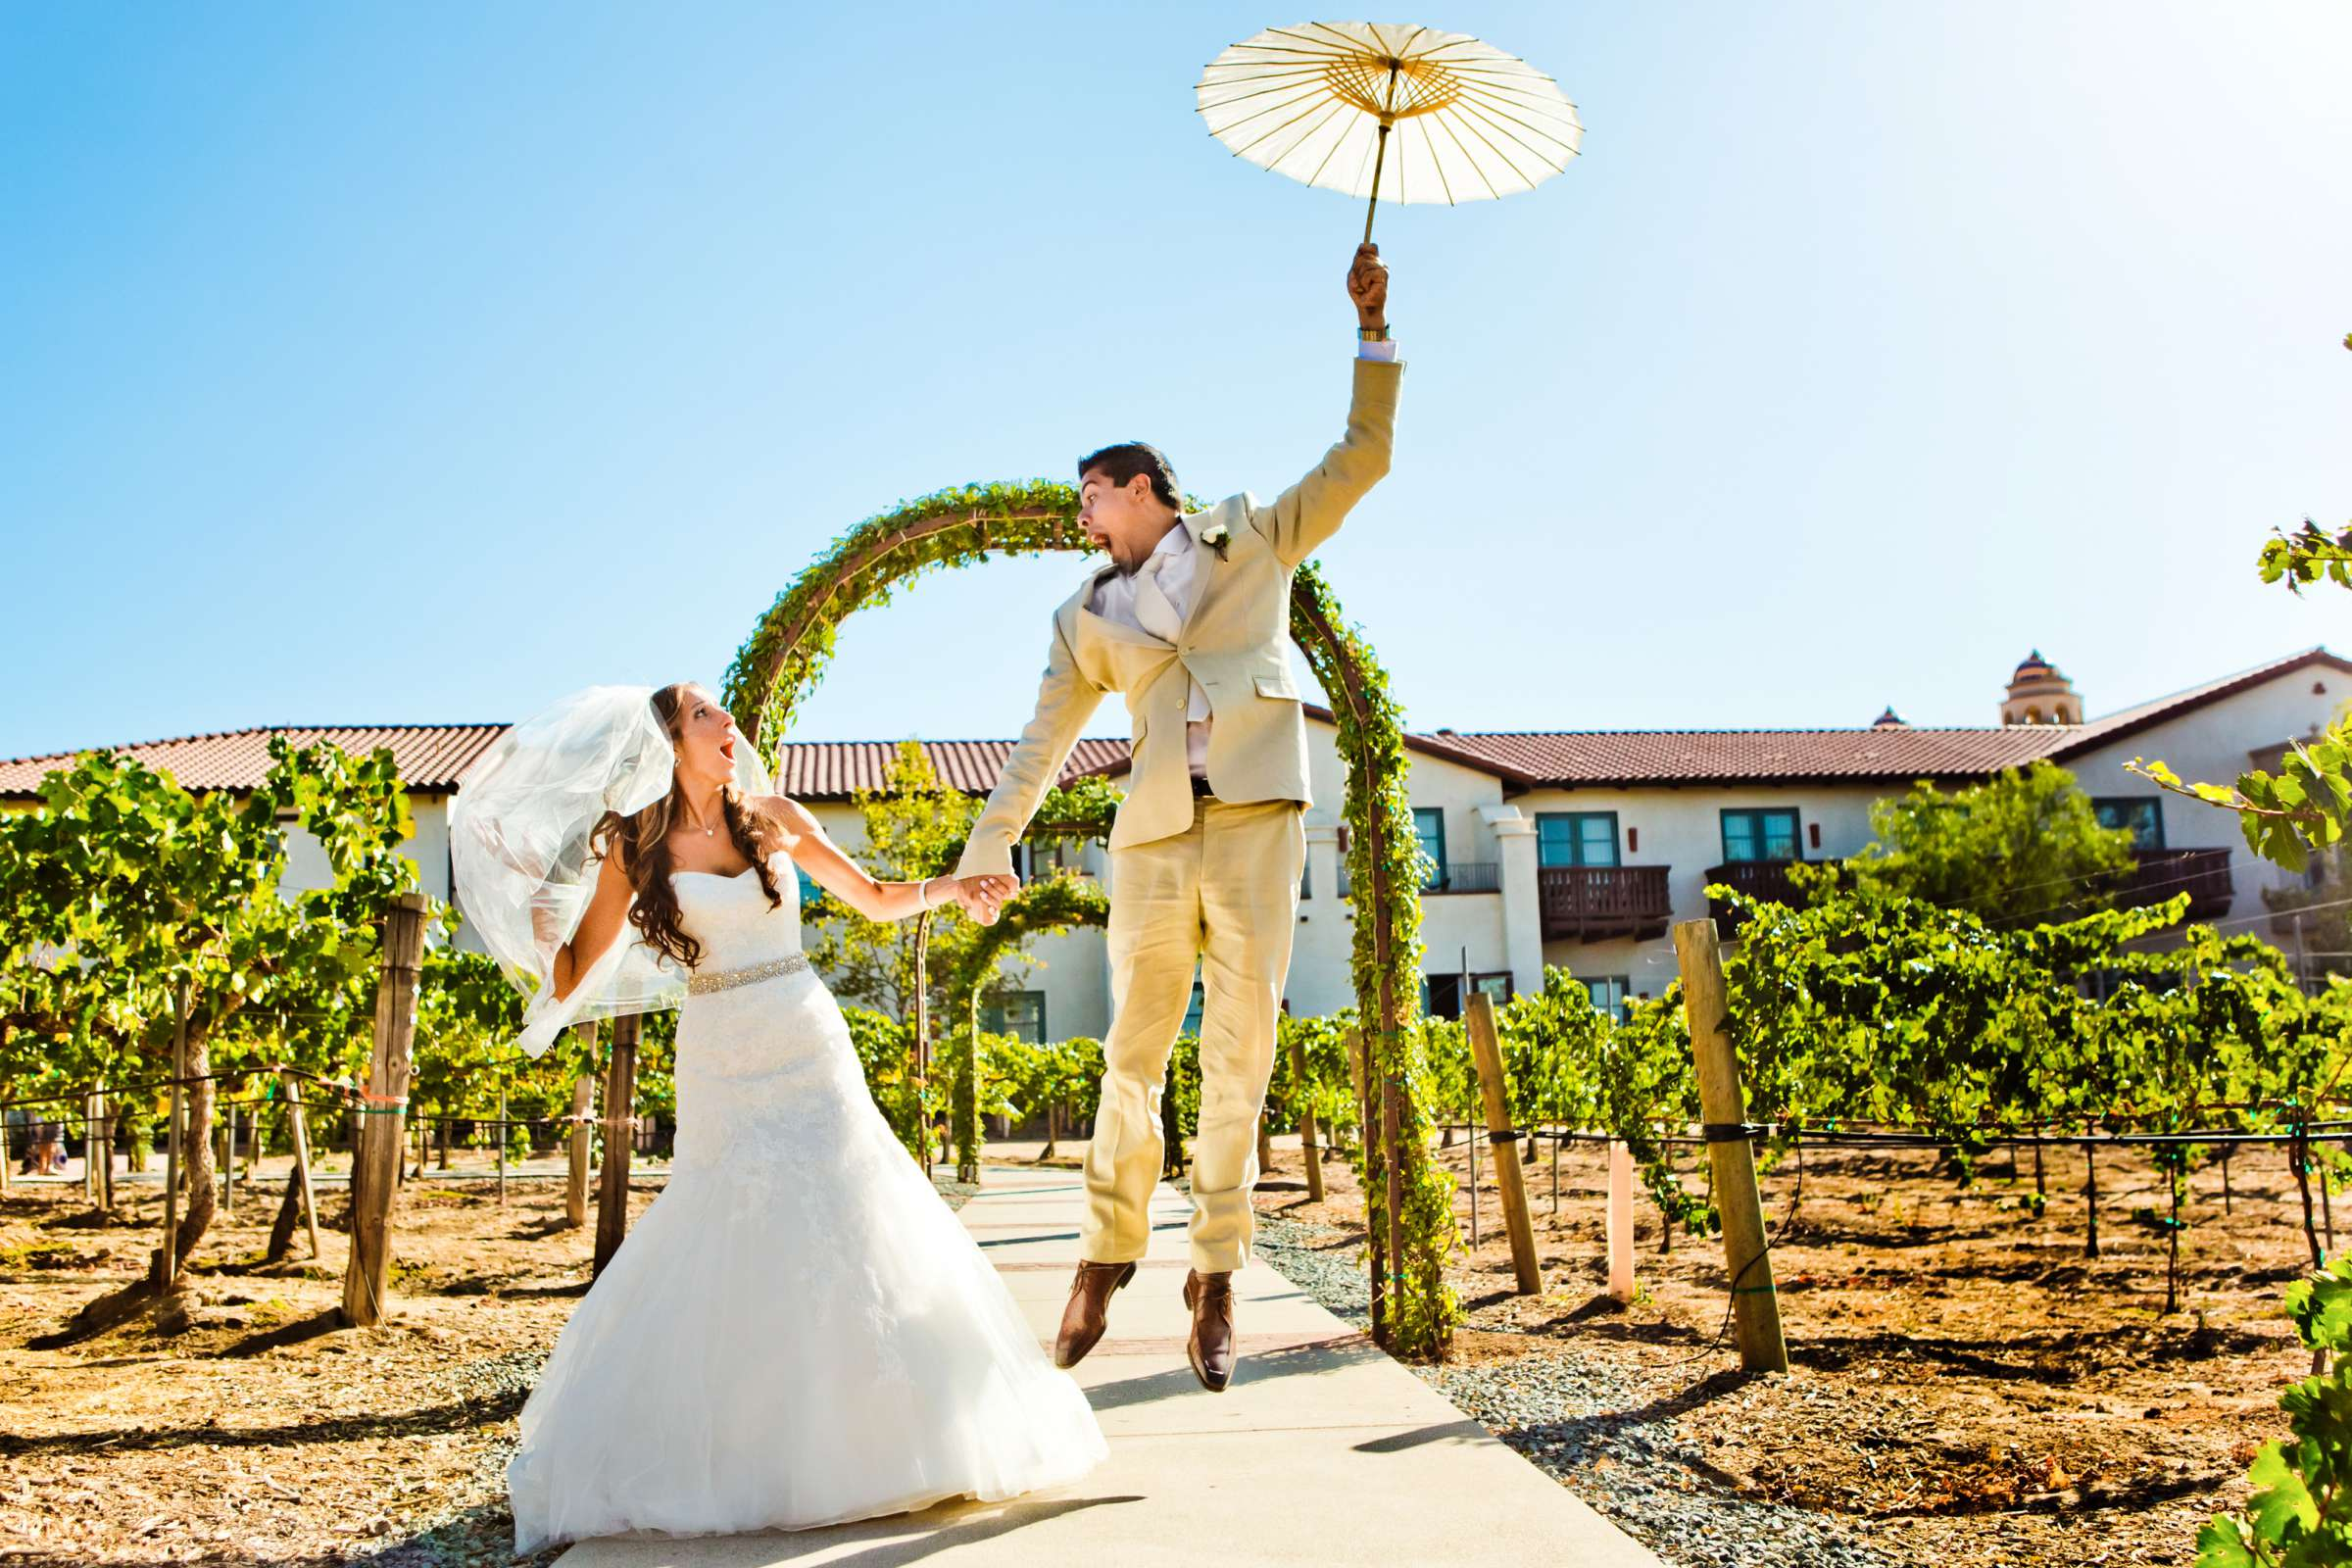 Ponte Estate Winery Wedding, Meagan and Adrian Wedding Photo #335080 by True Photography